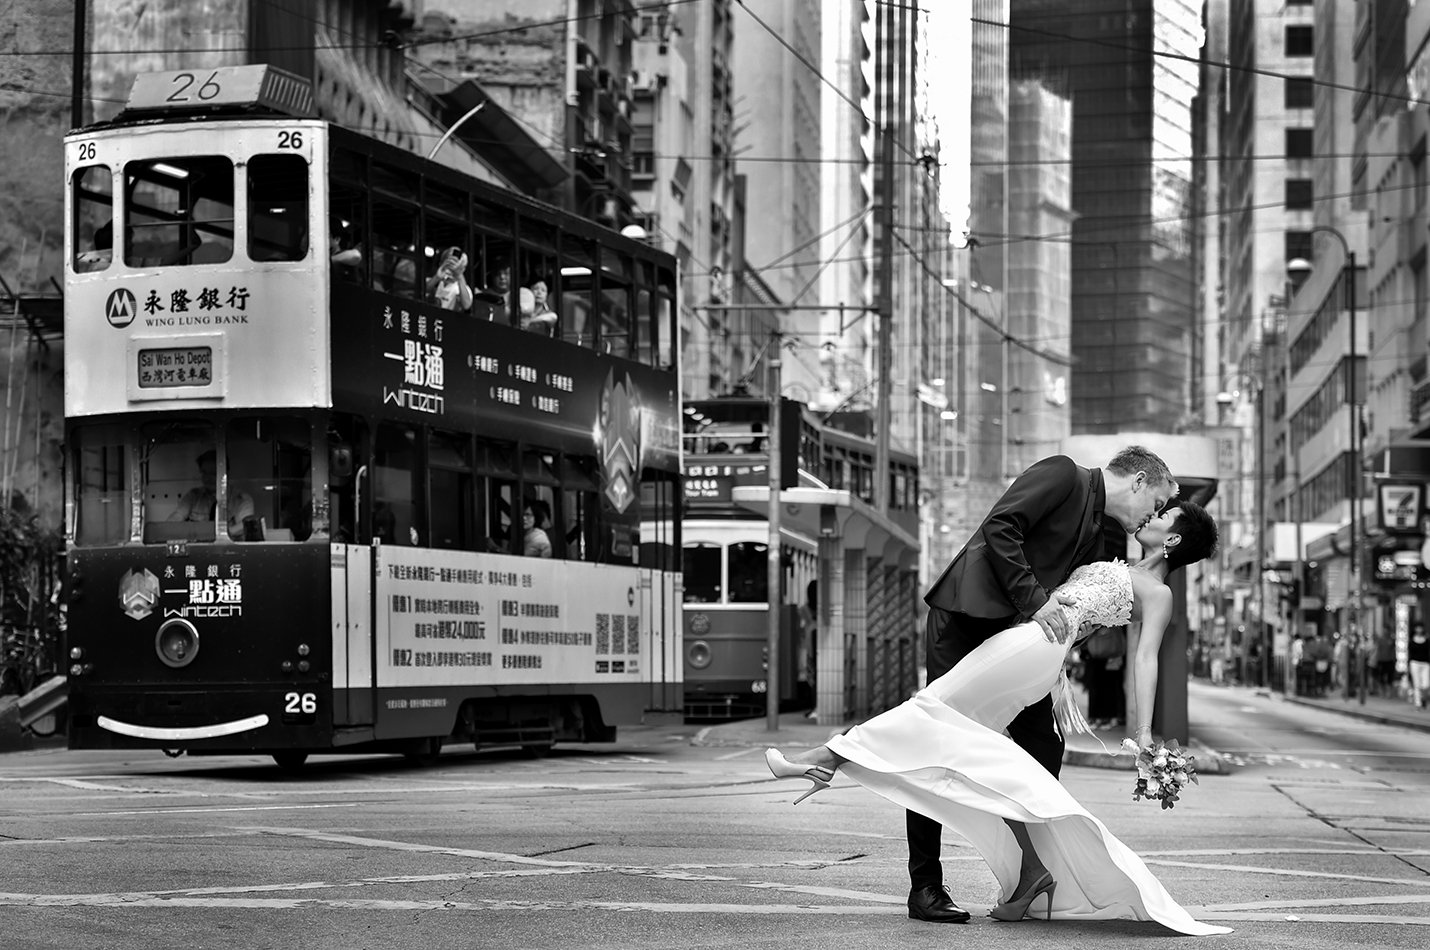 hong kong wedding photographer, hong kong Photography, Hong Kong Wedding Photography, Destination Wedding, Wedding Photography, Indian Wedding, Chinese wedding, top wedding photographer, Creative Photography, Pre-wedding Photography, engagement photography, best photographer, celebrity photographer